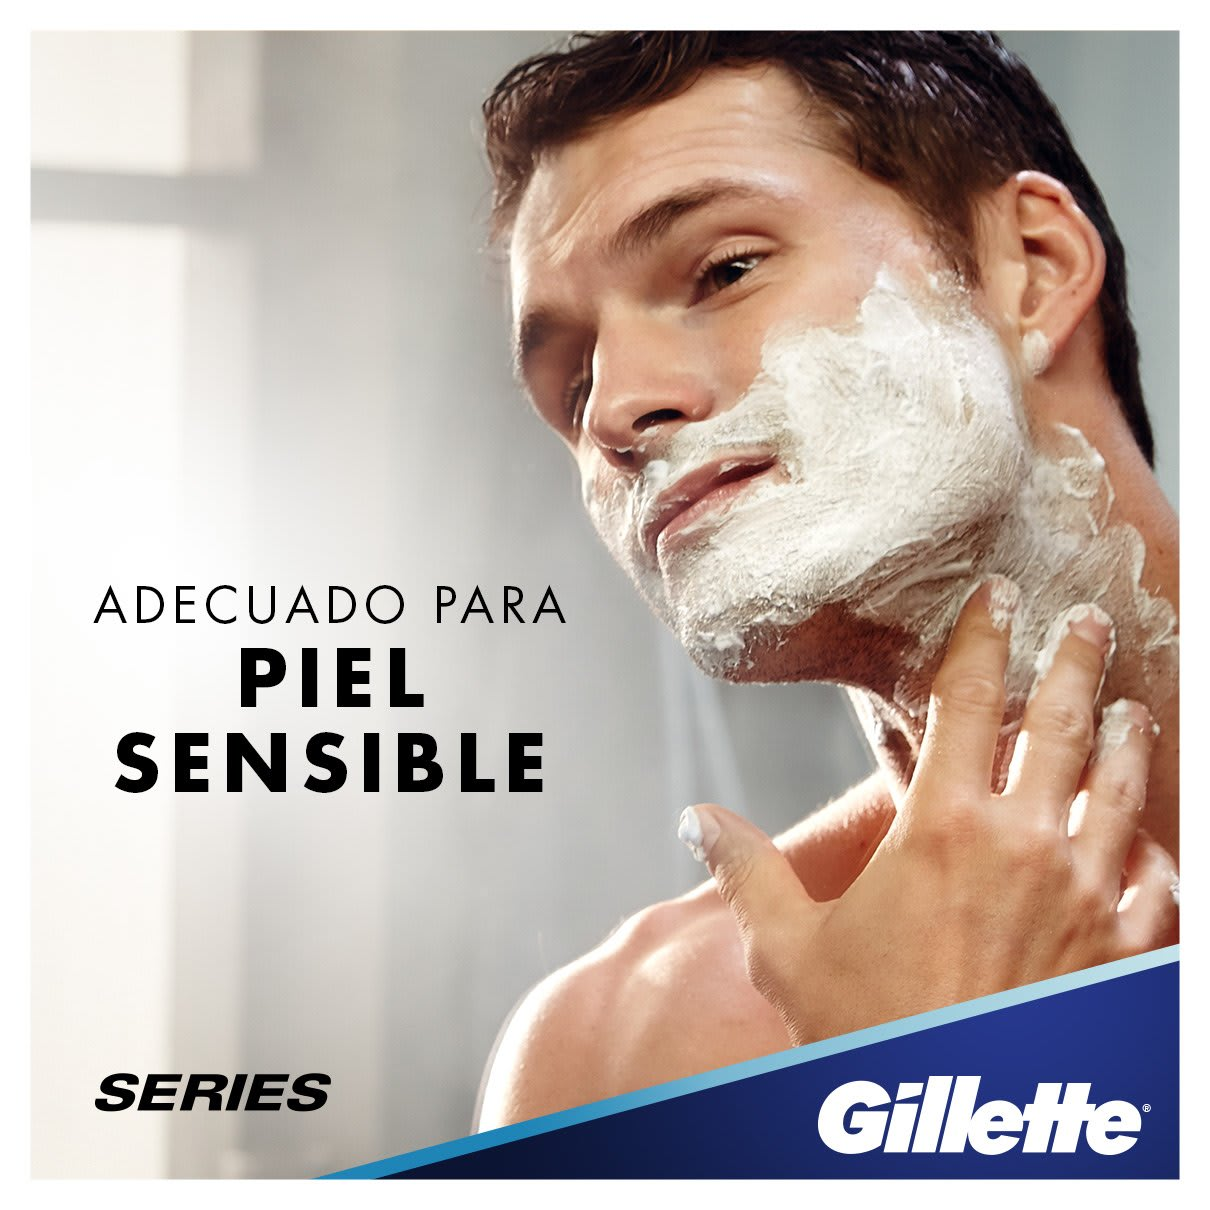 Ideal para piel sensible | Espuma de afeitar Sensitive Cool de Gillette Series